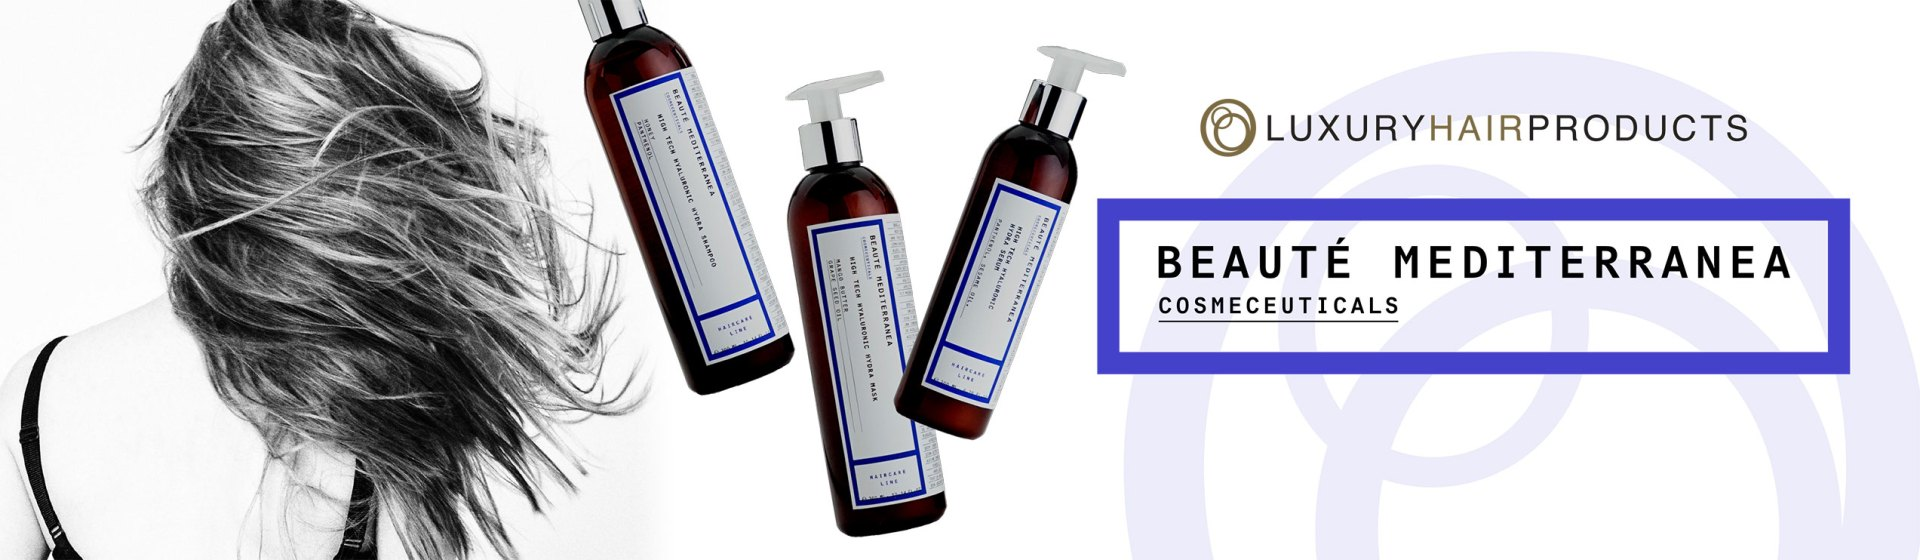 Beauté Mediterranea cosmeceuticals - Luxury hair products